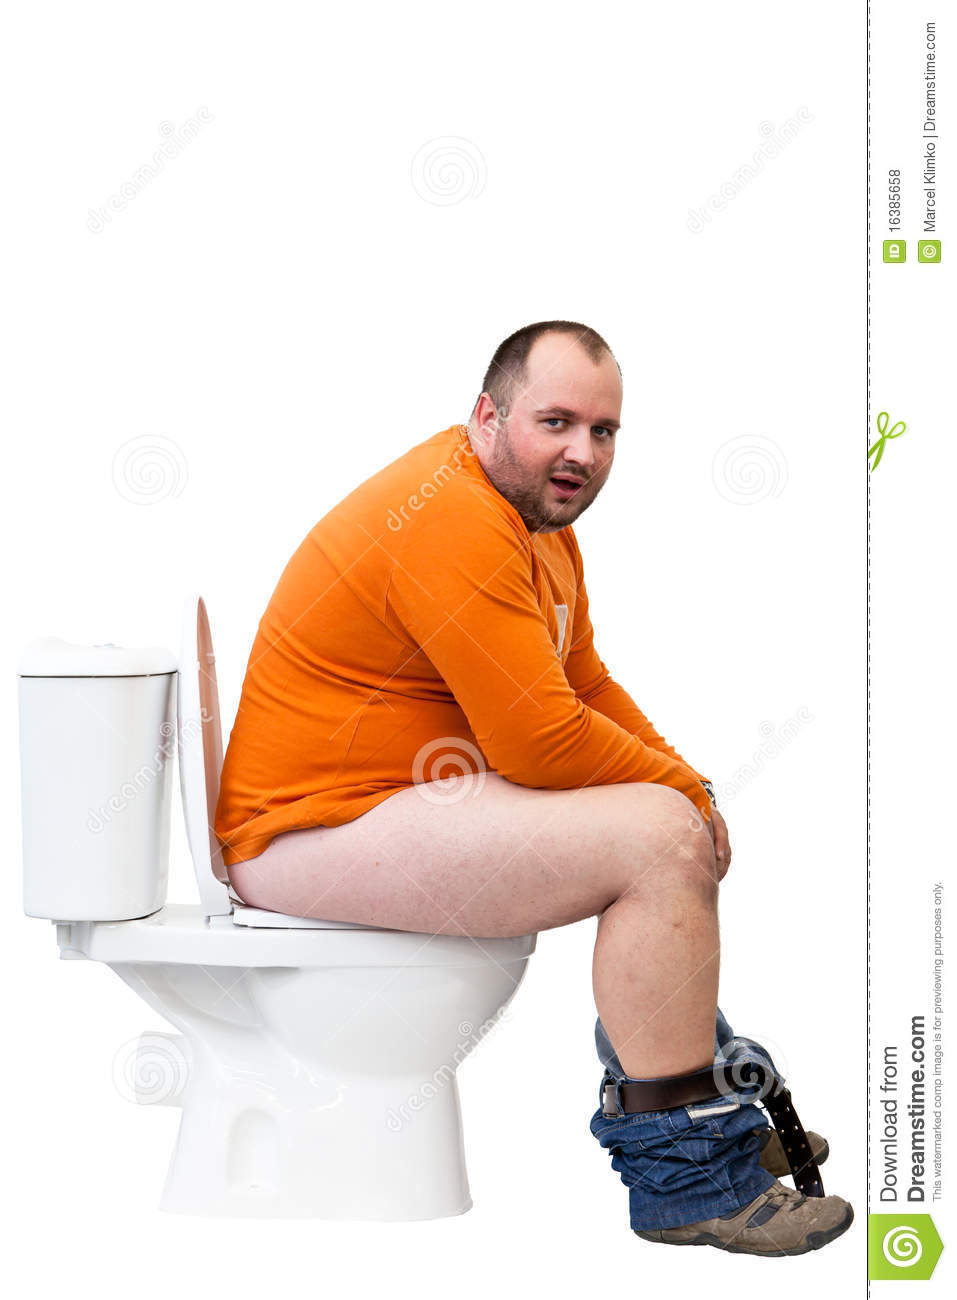 Man Sitting On Toilet Royalty Free Stock Photos Image